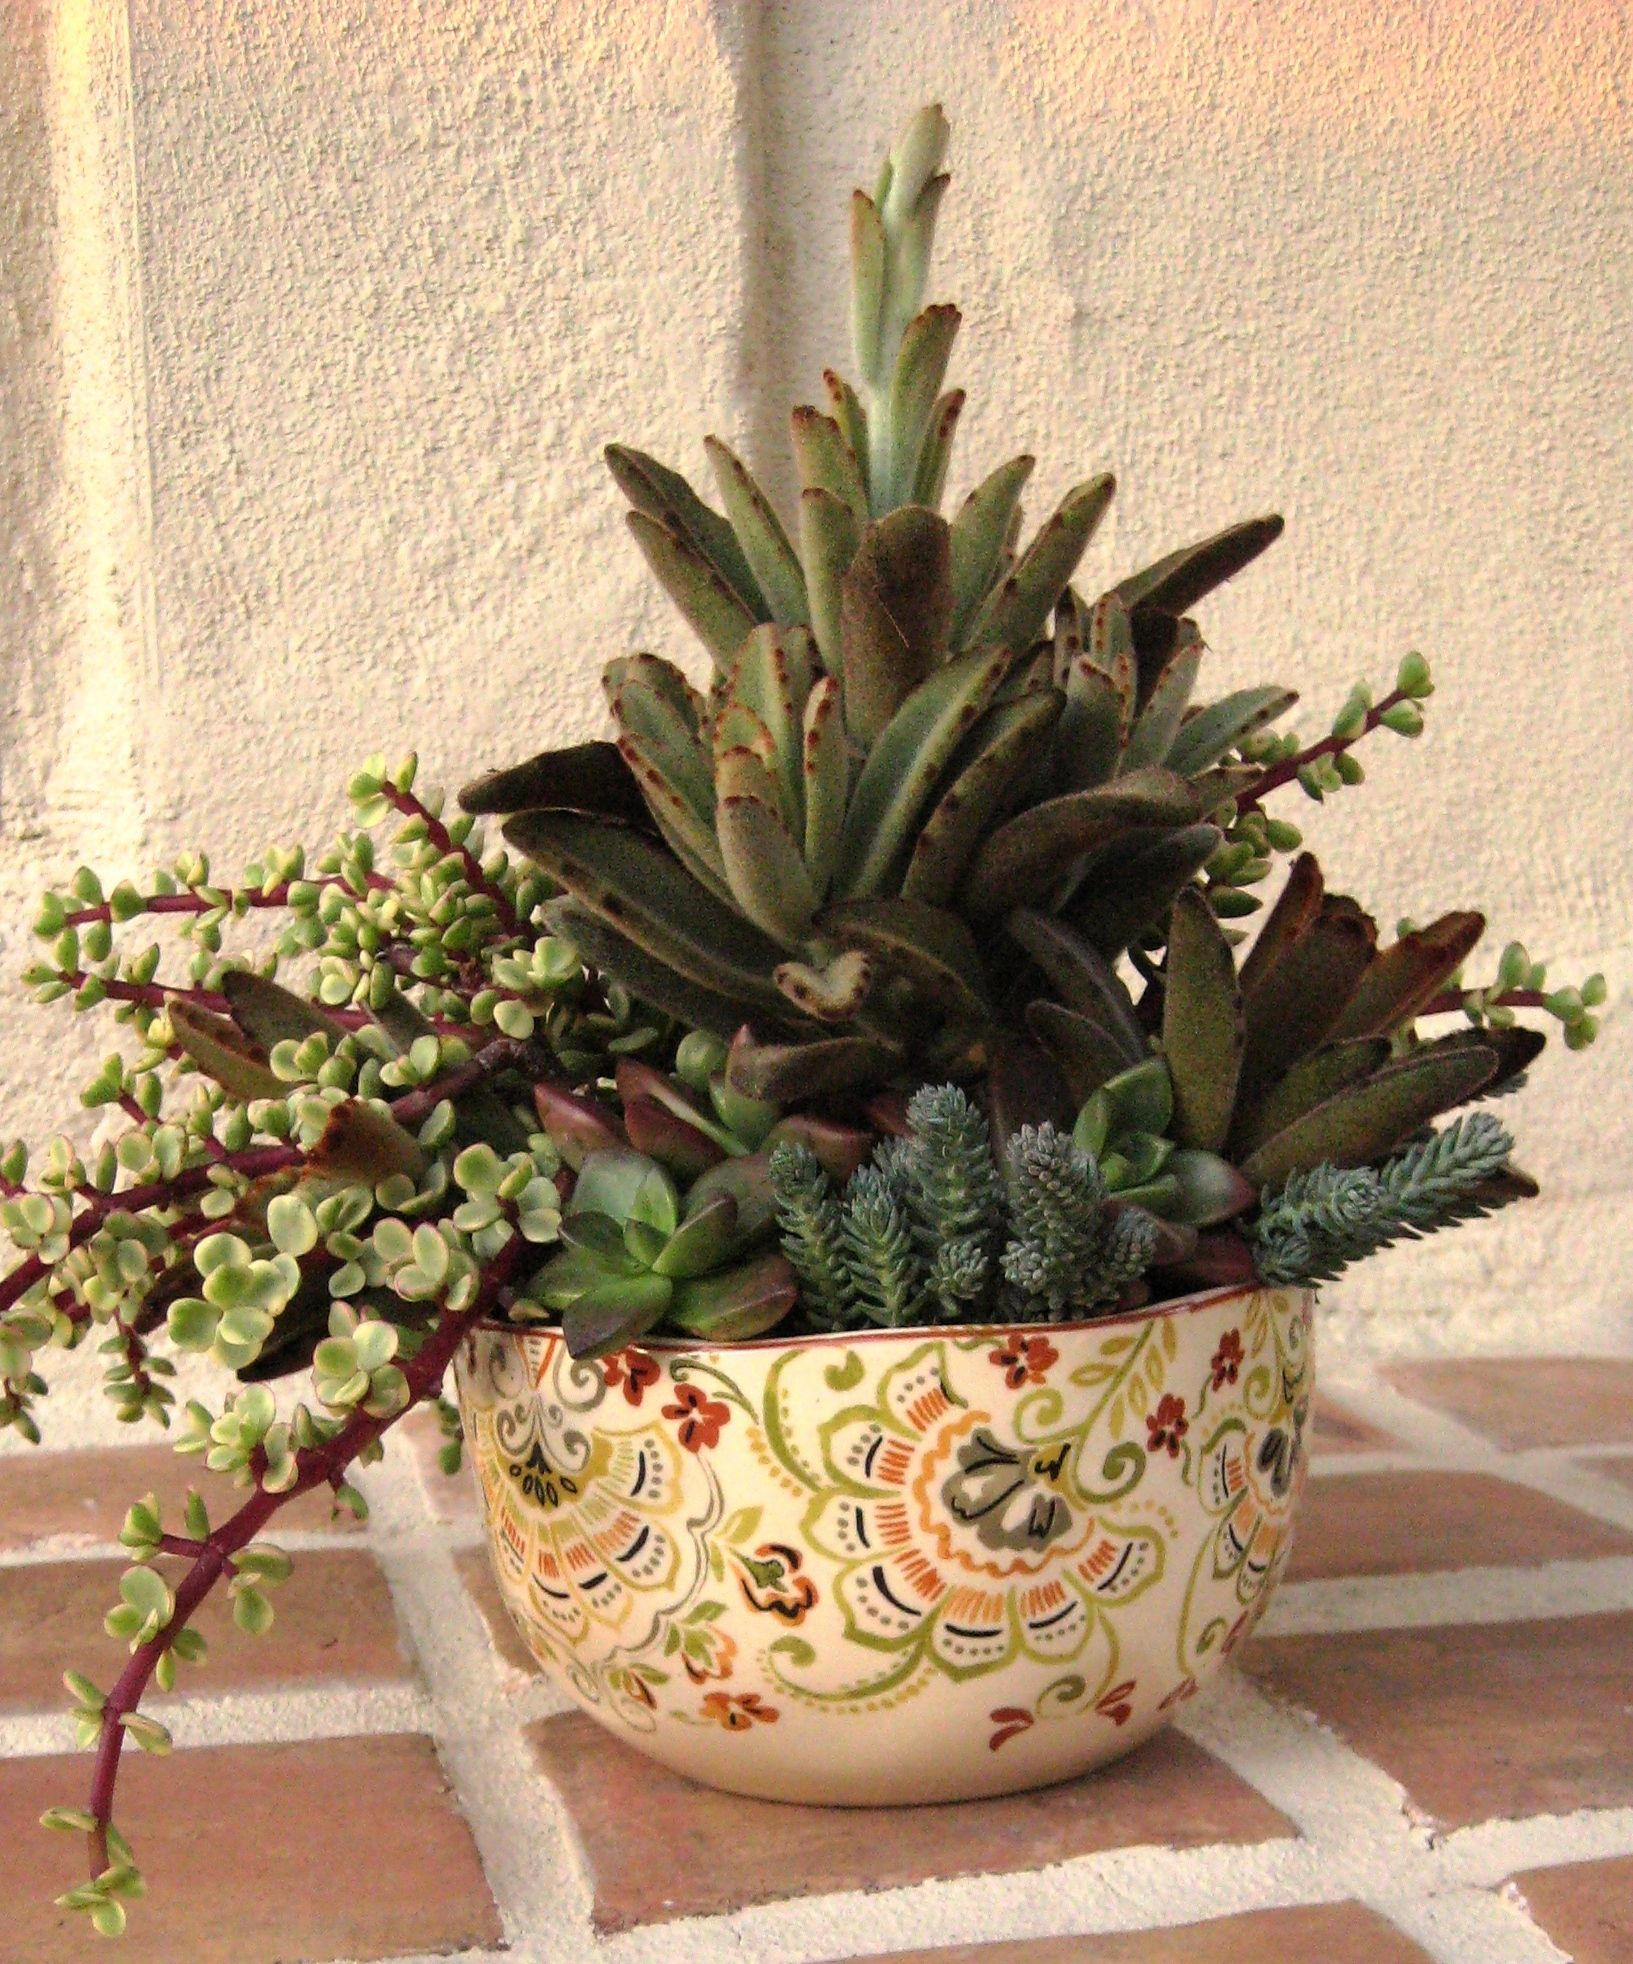 Design By Cindy Davison Of The Succulent Perch Succulents